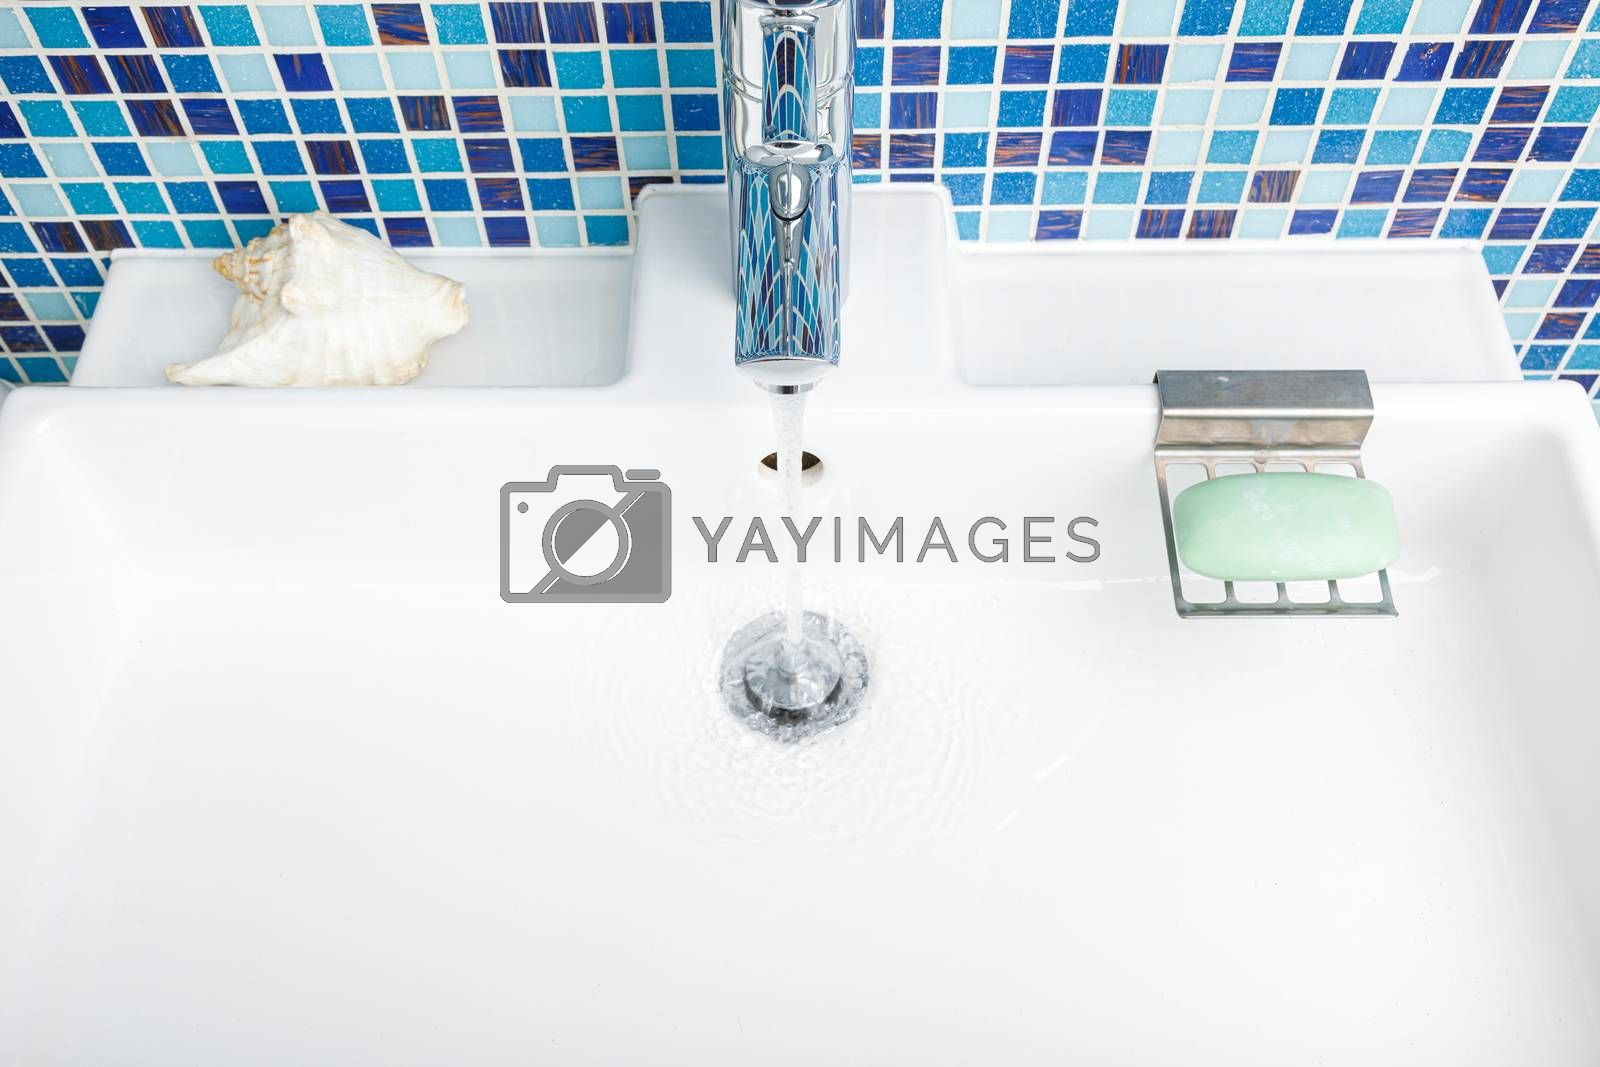 Bathroom sink tap with running water - wasting water concept